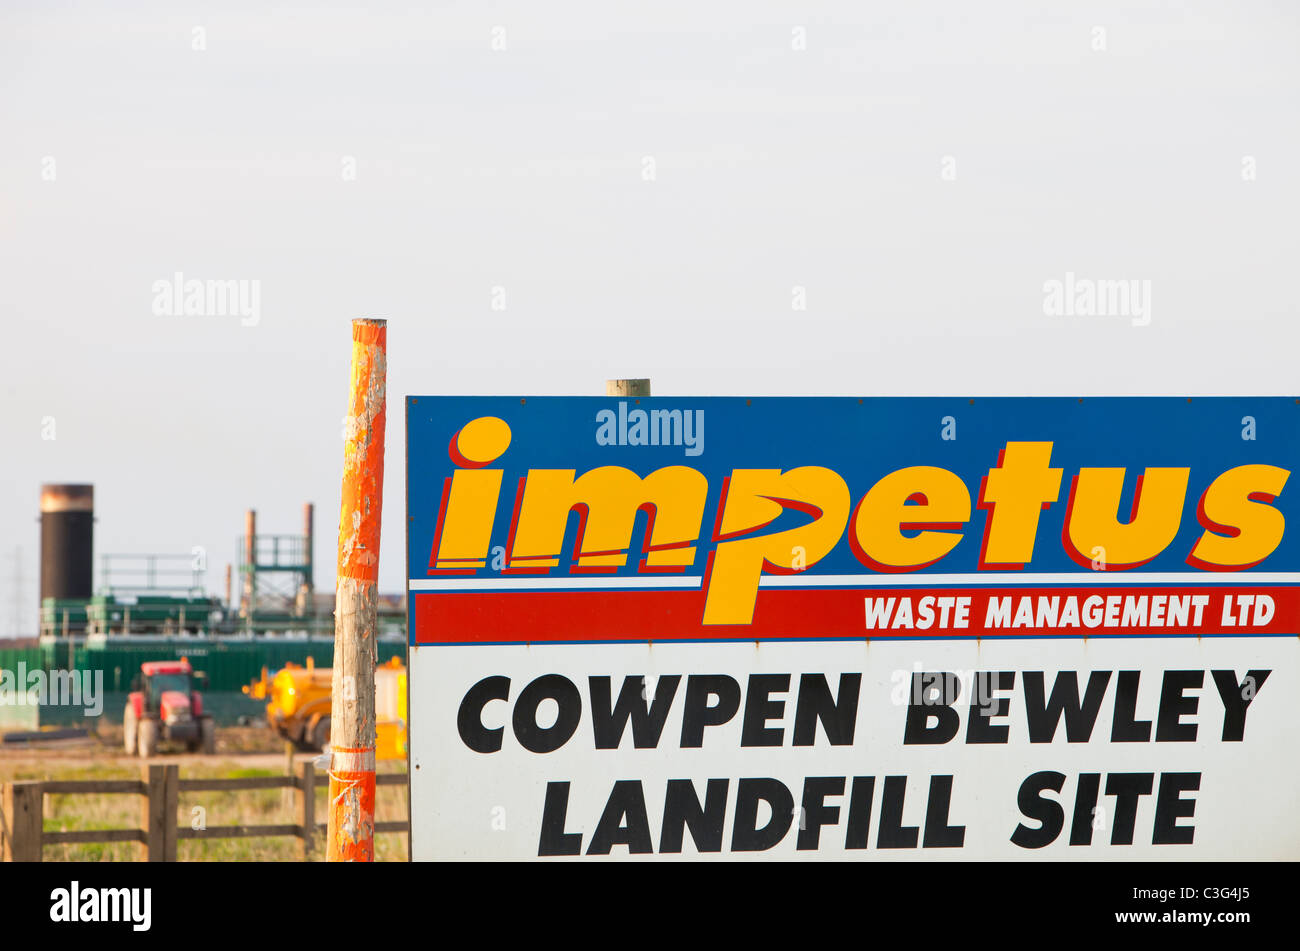 Cowpen Bewley landfill site in Billingham, Teeside, UK, taps off methane from the decomposition of oraganic waste - Stock Image